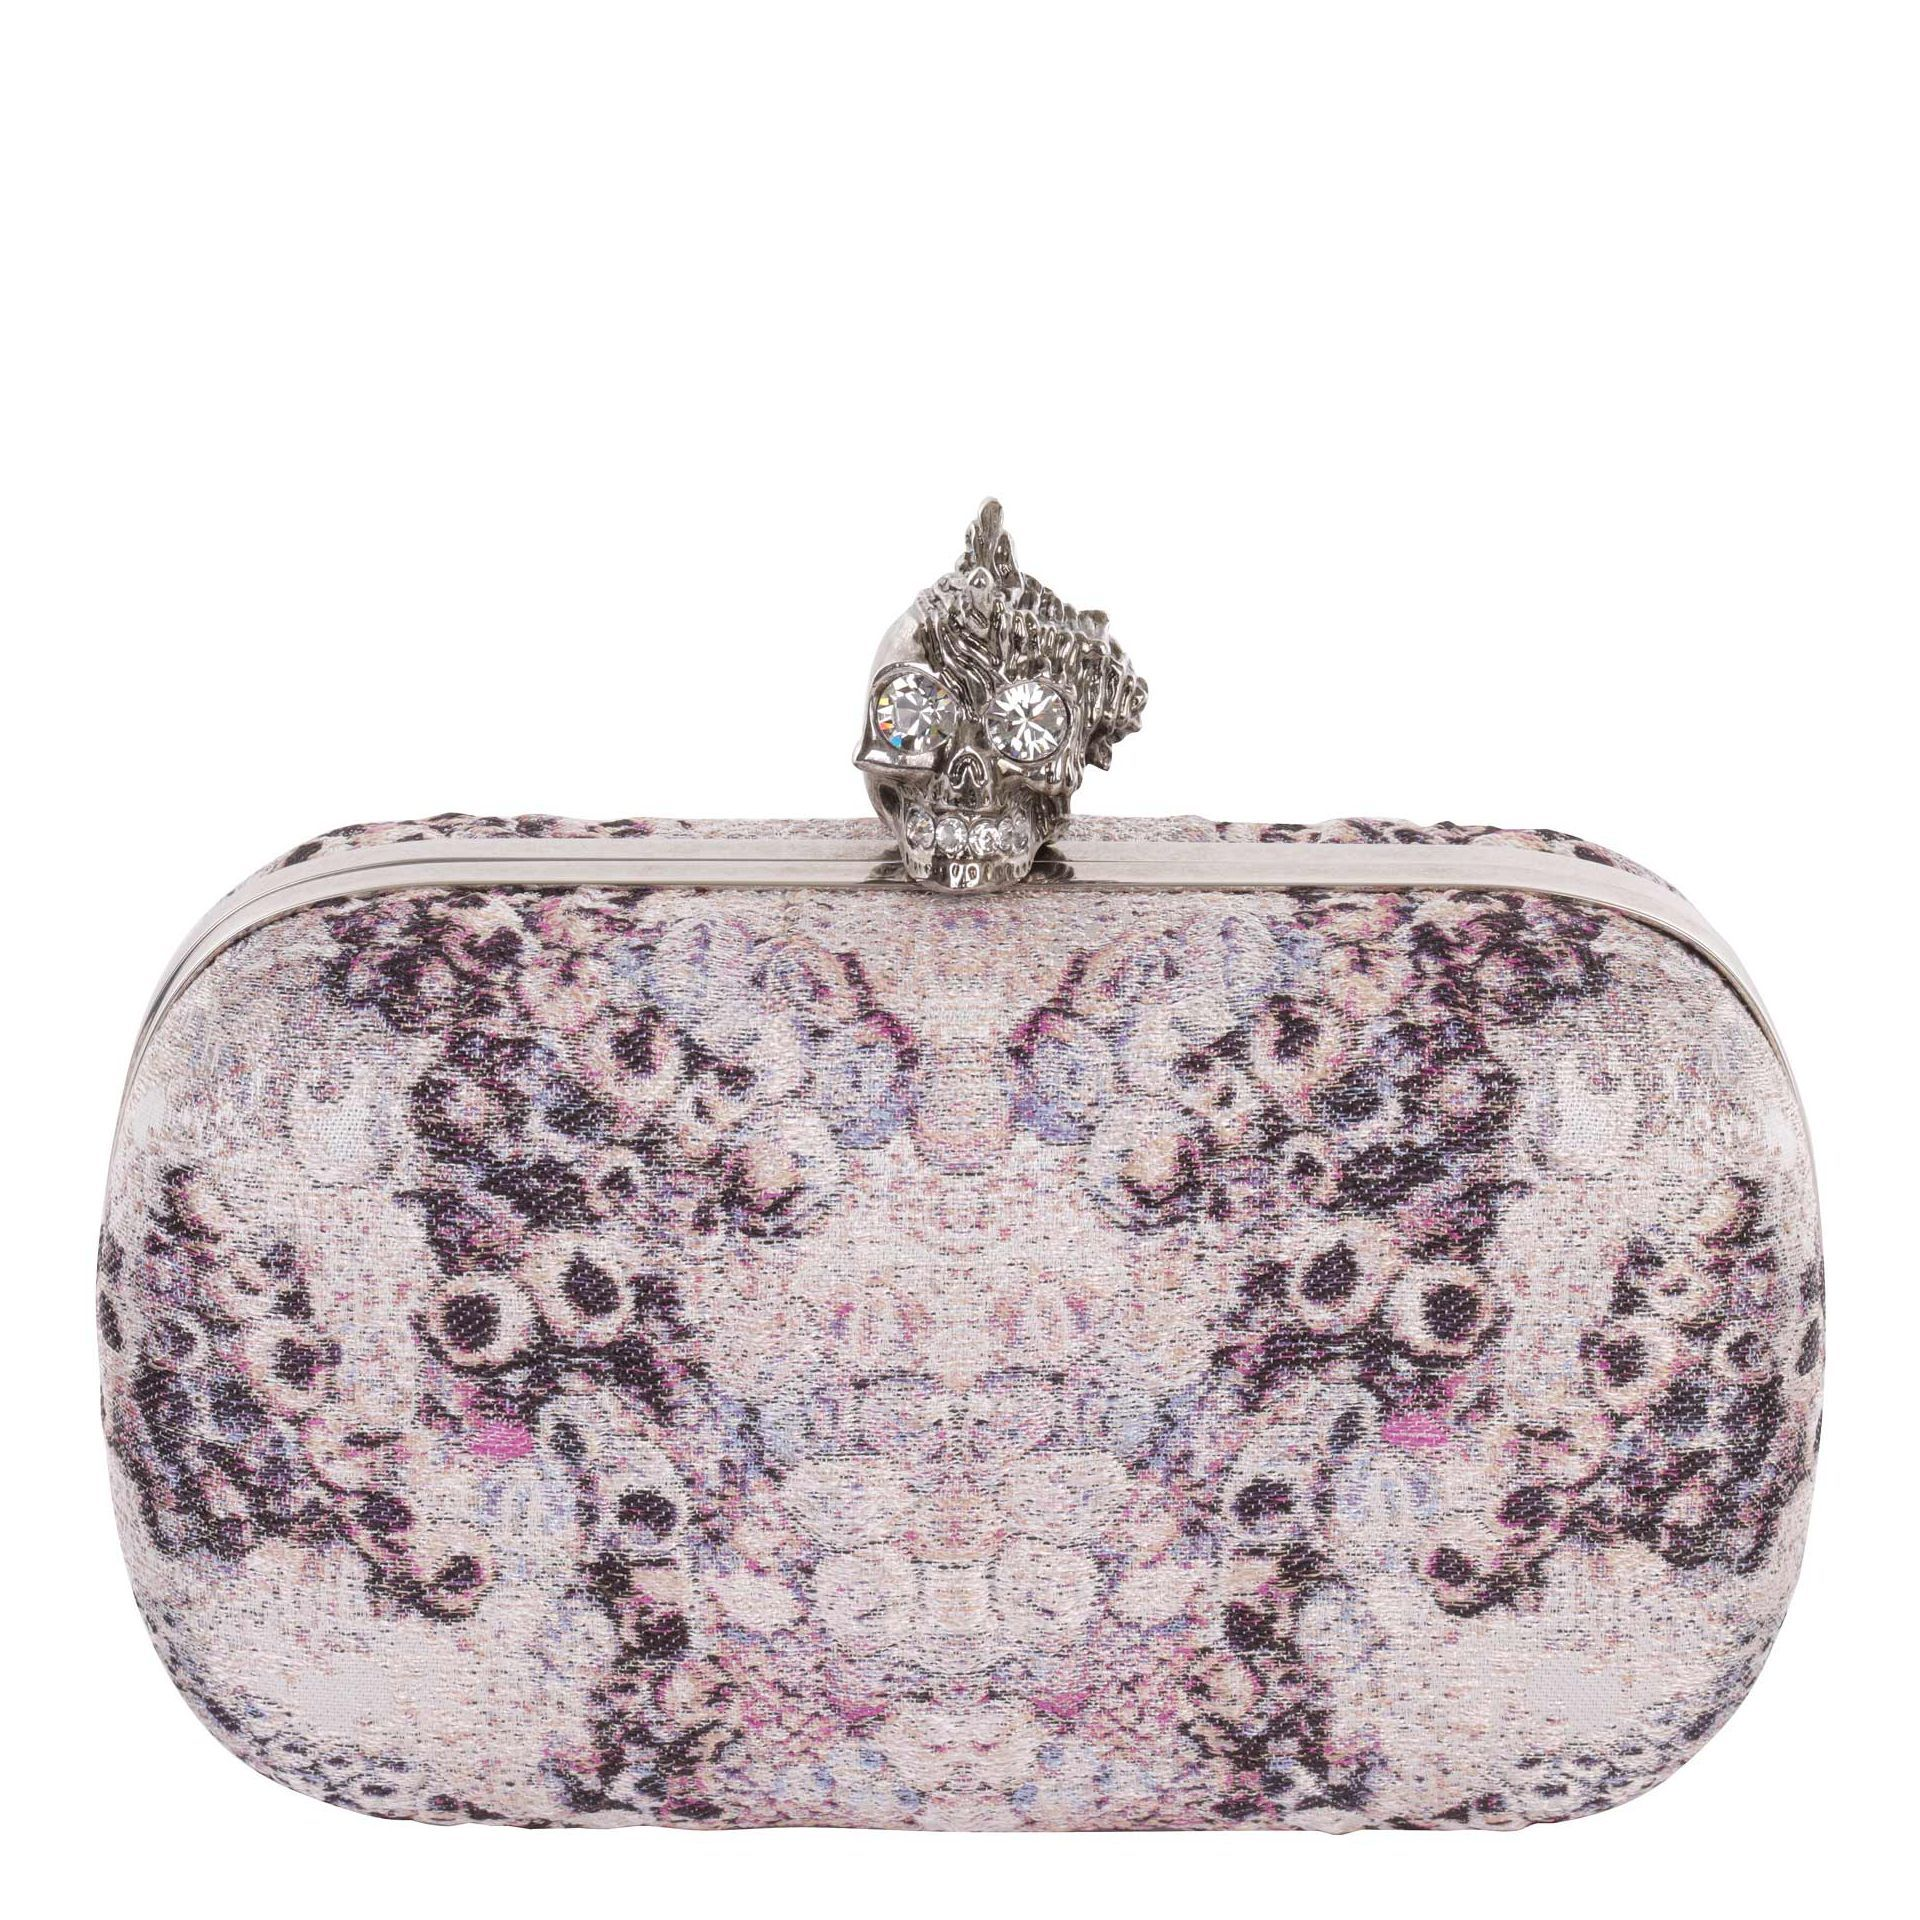 BARNACLE JACQUARD SHELL PUNK SKULL BOX CLUTCH    DESCRIPTION  Silk barnacle jacquard skull box clutch with crystal detail silver finish shell punk skull clasp.    DIMENSIONS:  16cm width, 9.5cm height, 6cm depth  MATERIAL:  silk, leather and silver finish brass